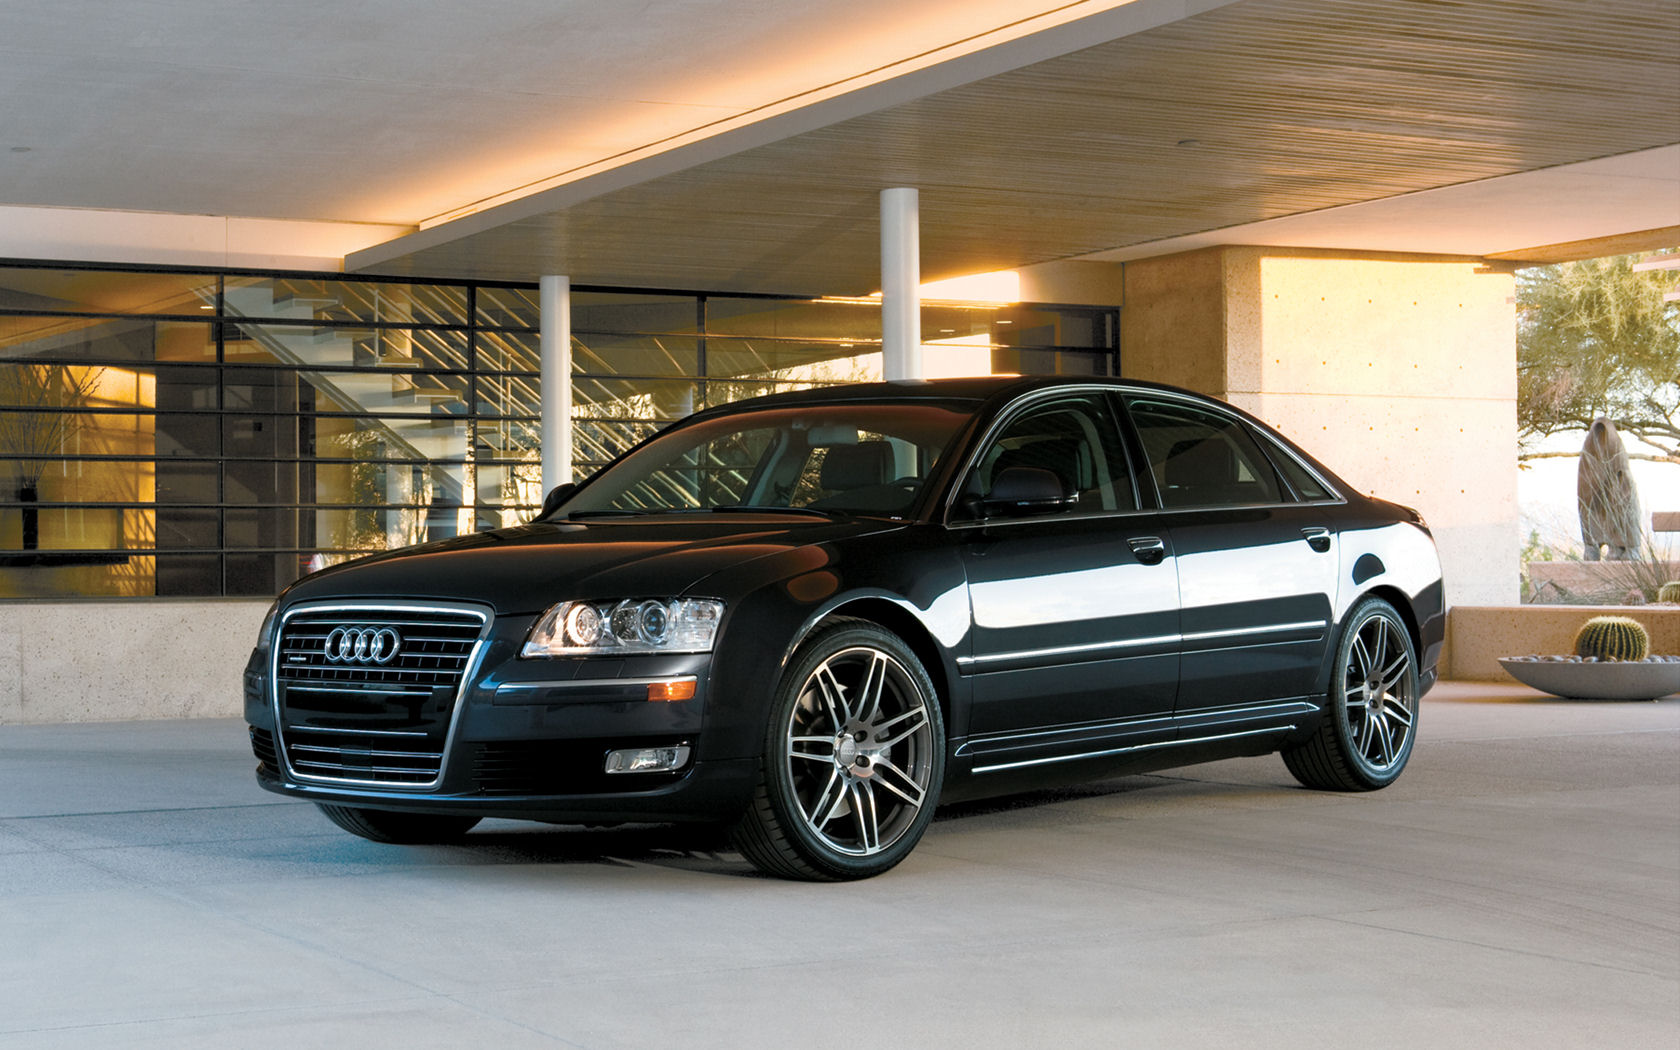 Audi S8 Wallpapers Desktop 1680x1050 px WallpapersExpertcom 1680x1050